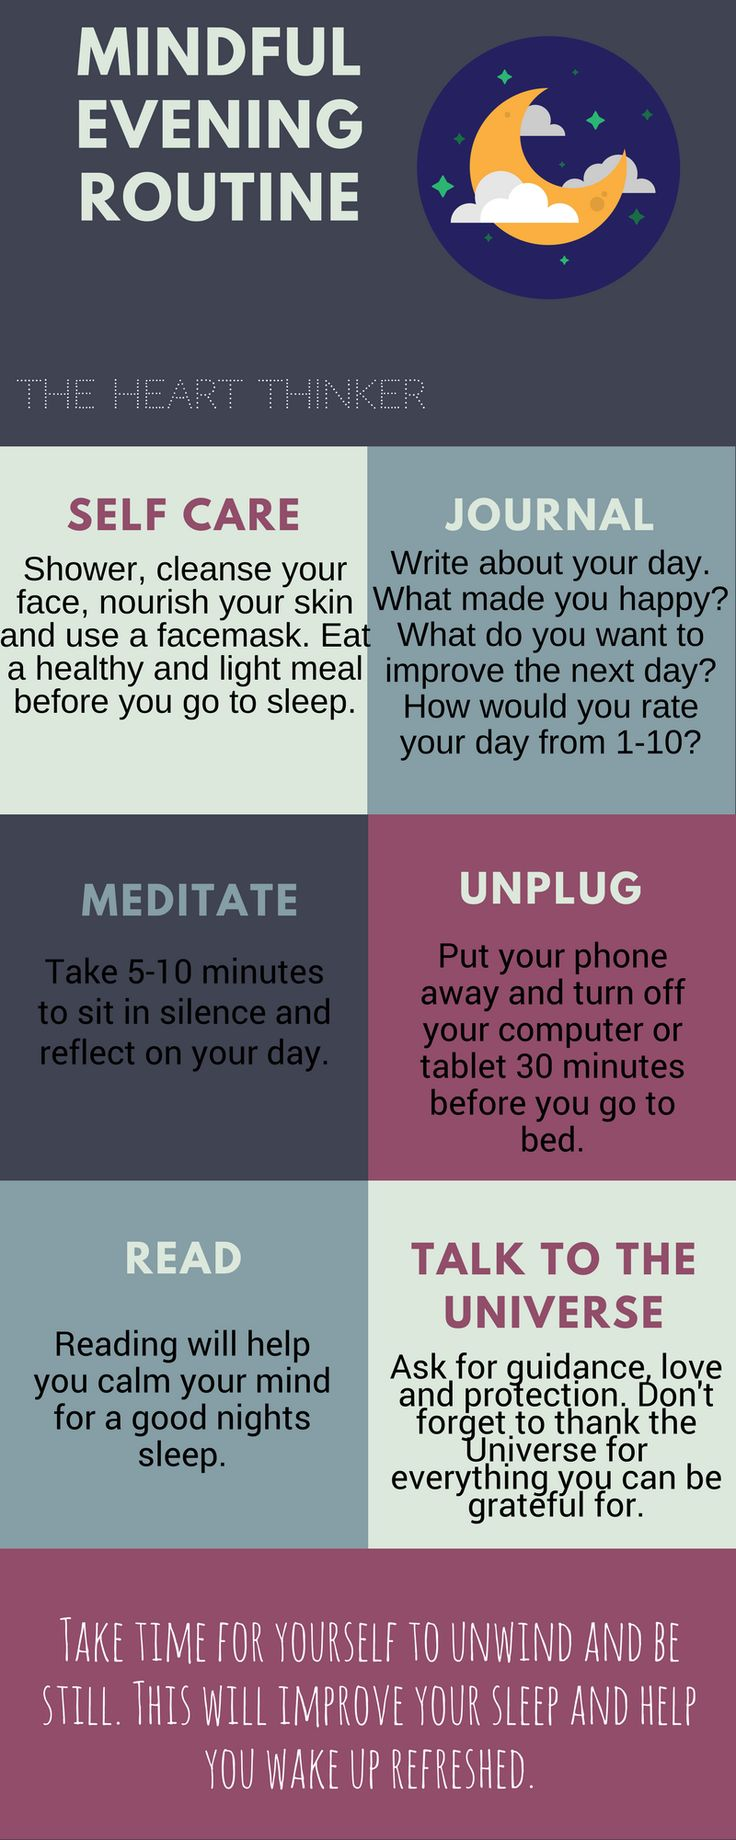 Do you feel like you are not getting a good nights sleep? Do you find yourself restless and stressed out laying in bed? I AM HERE TO HELP! Visit my blog to read how this routine can positively influence your sleep and your peace of mind! Love-Happiness-Positivity-Mindfulness-Mindful living-Spirituality-Law of Attraction-The Secret-Manifesting-Visualizing-Meditation-Gratitude-Zen-Peace-Serenity-Self Love-Self Care-Routine-Spirit-Inner Guide-Universe-Manifestation-Visualisation-Dream Life-How…